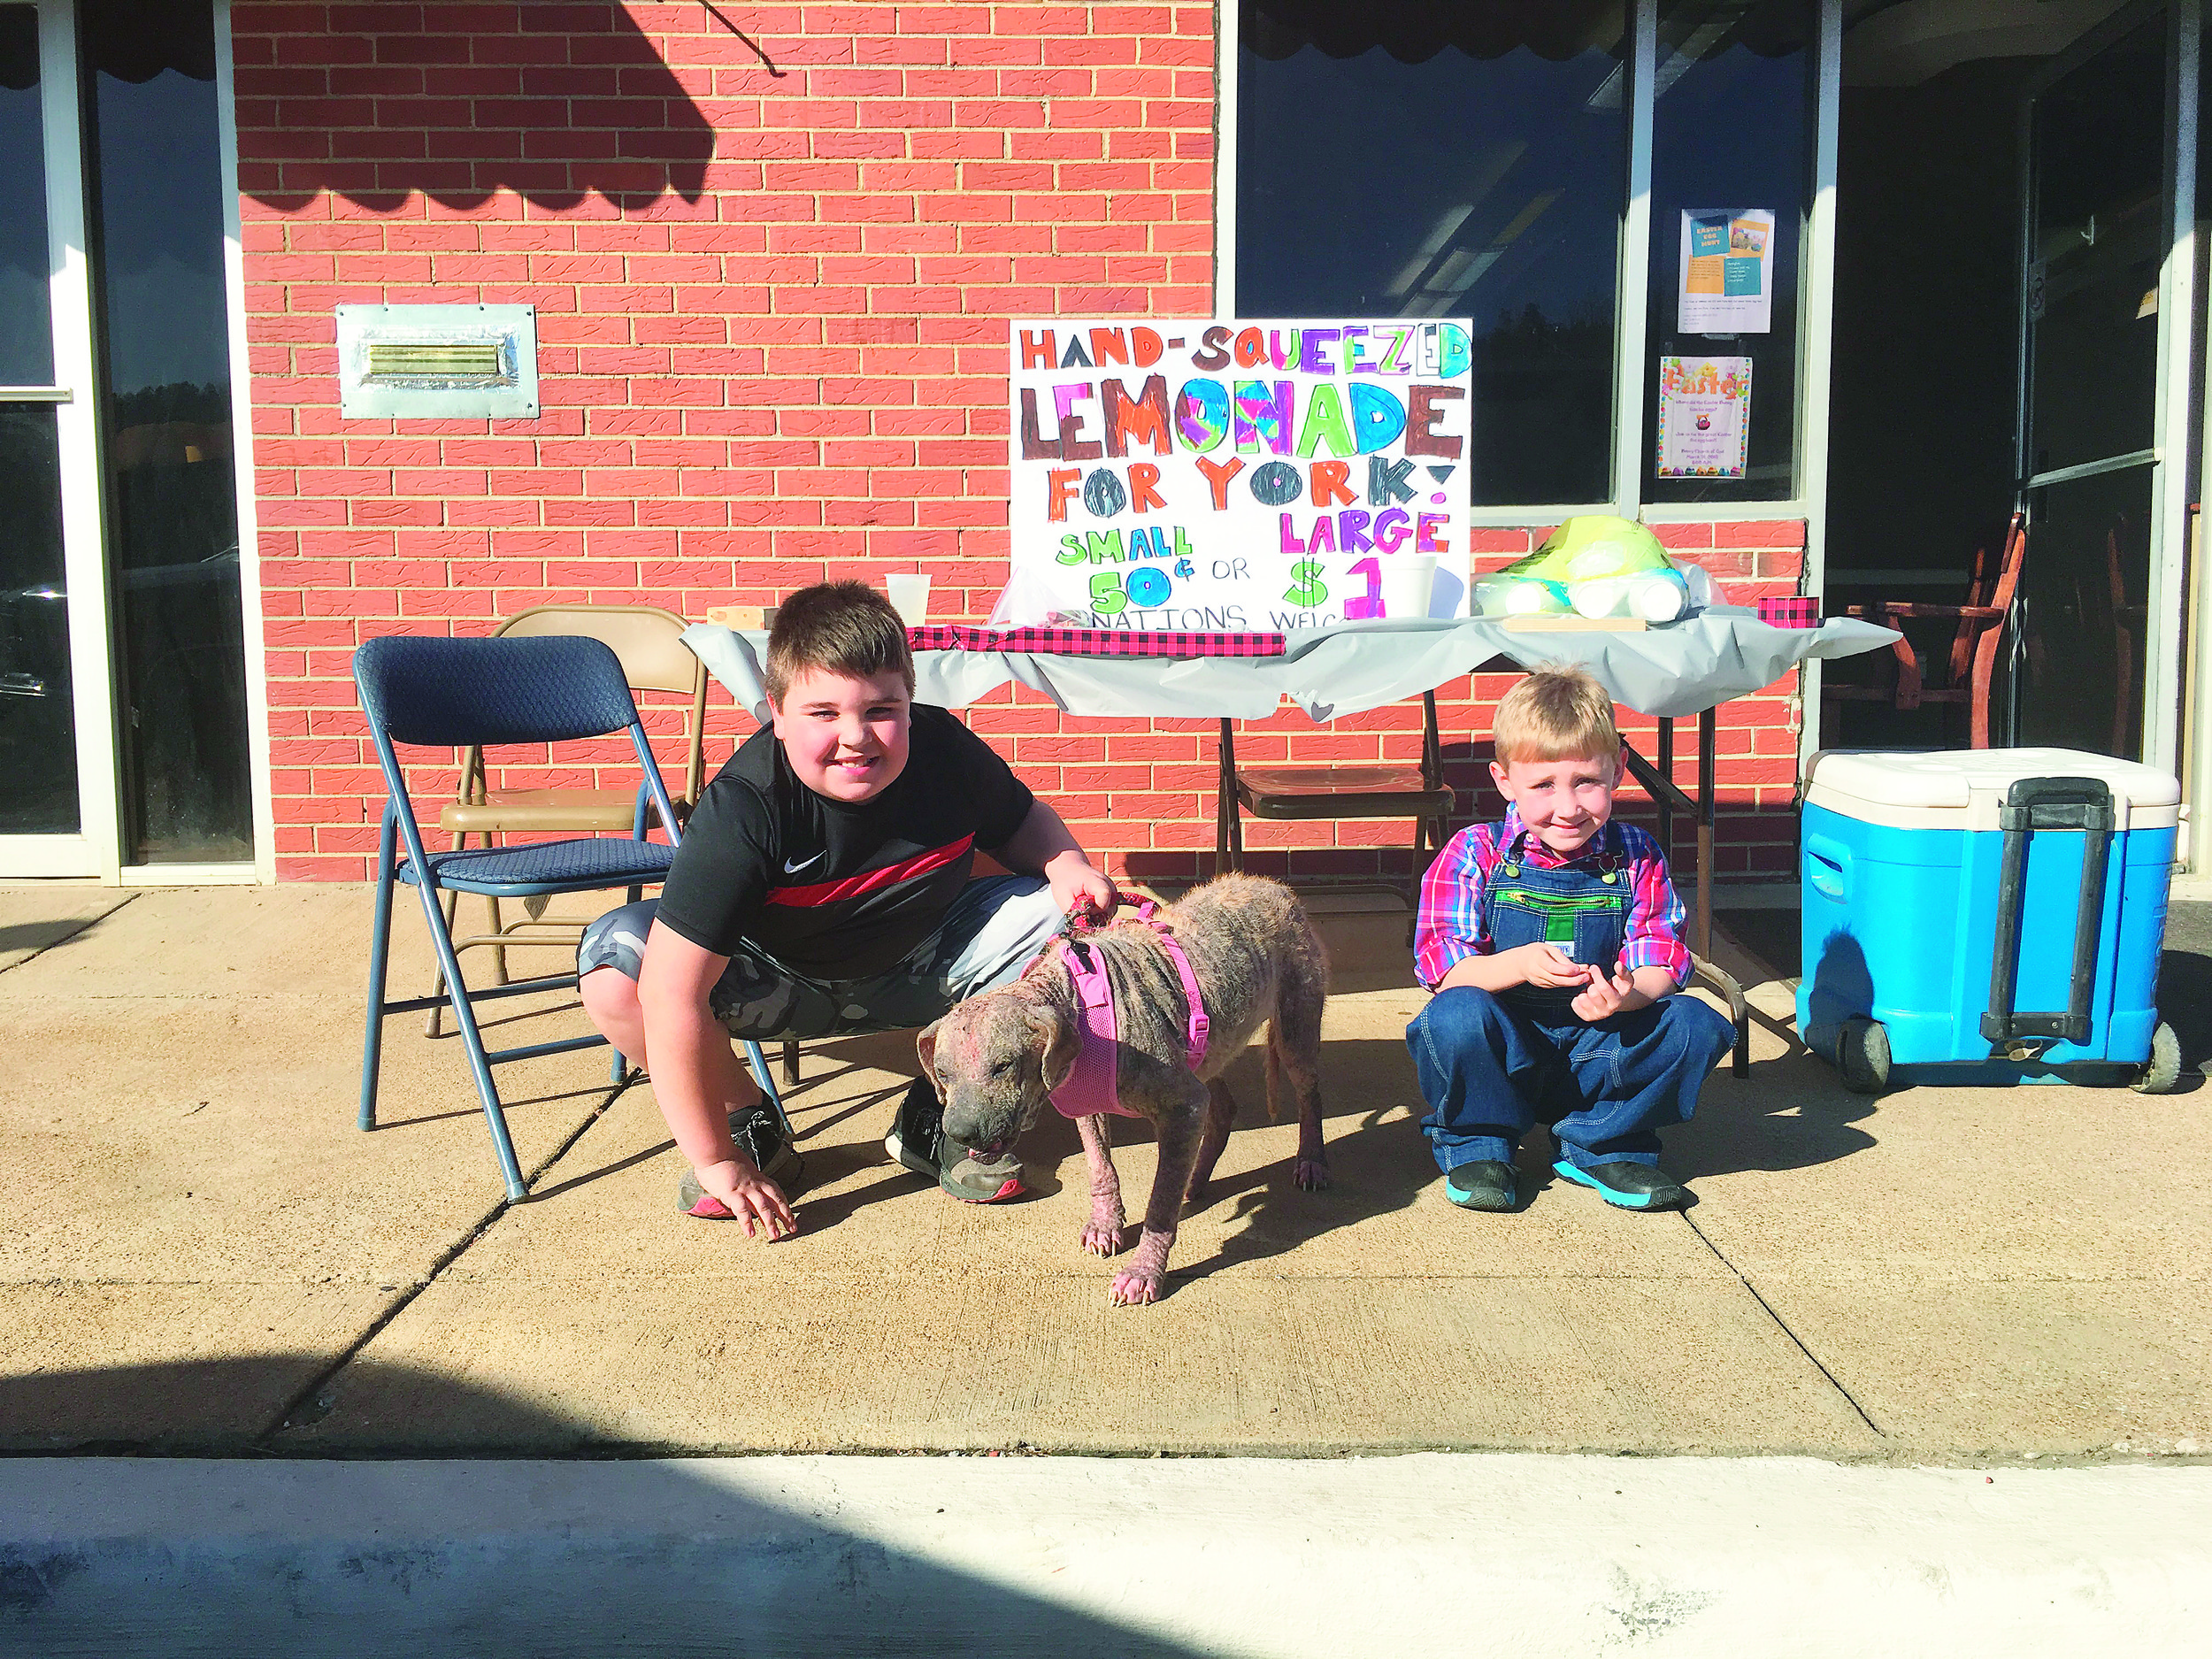 Two young boys in Oakman opened a lemonade stand Tuesday afternoon to raise money for York the dog, center. York was recently rescued in Oakman and is in the care of Rescuers United For Furbabies. The money collected will be used for York's medical bills.